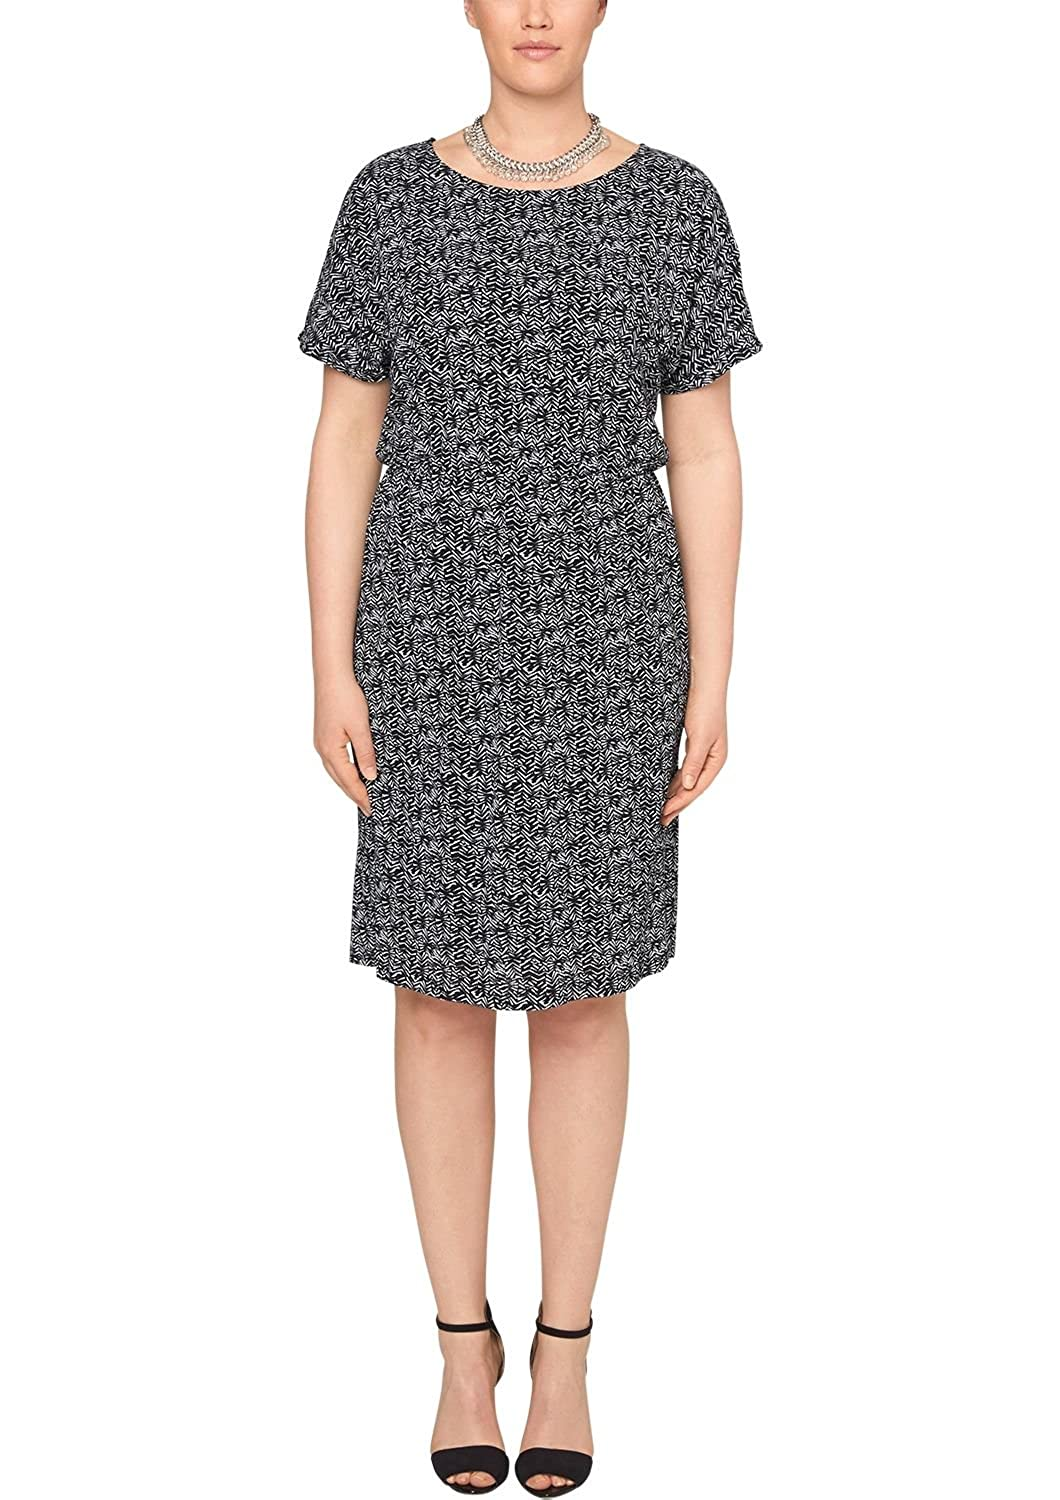 Triangle by s.Oliver Damen Kleid mit Alloverprint, Knielang